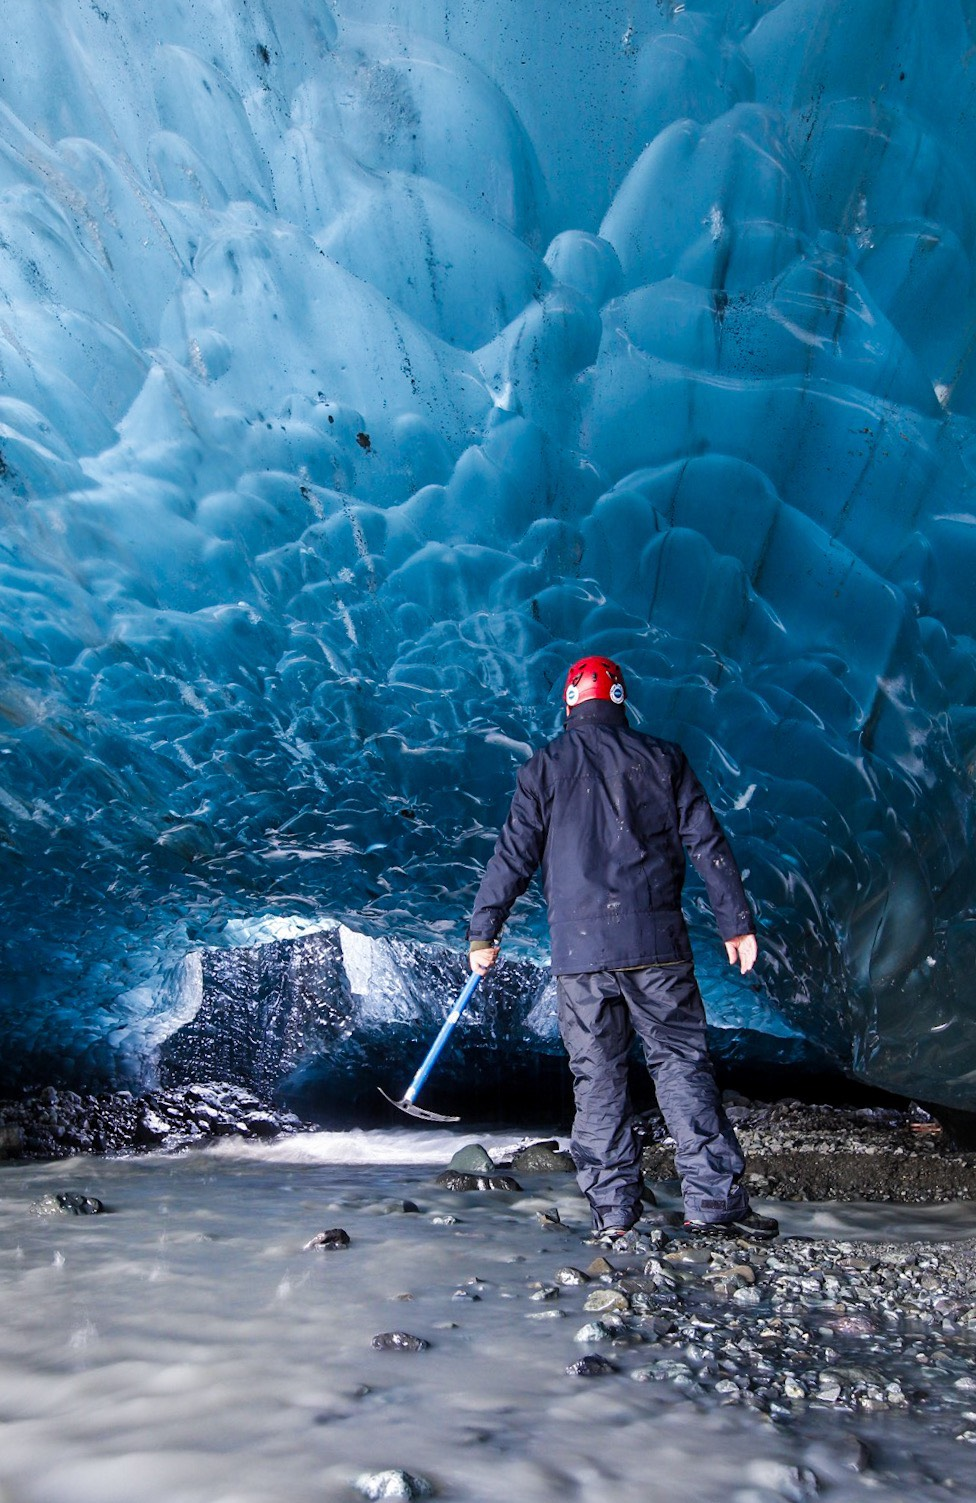 Blue Iceland - Crystal Ice Cave